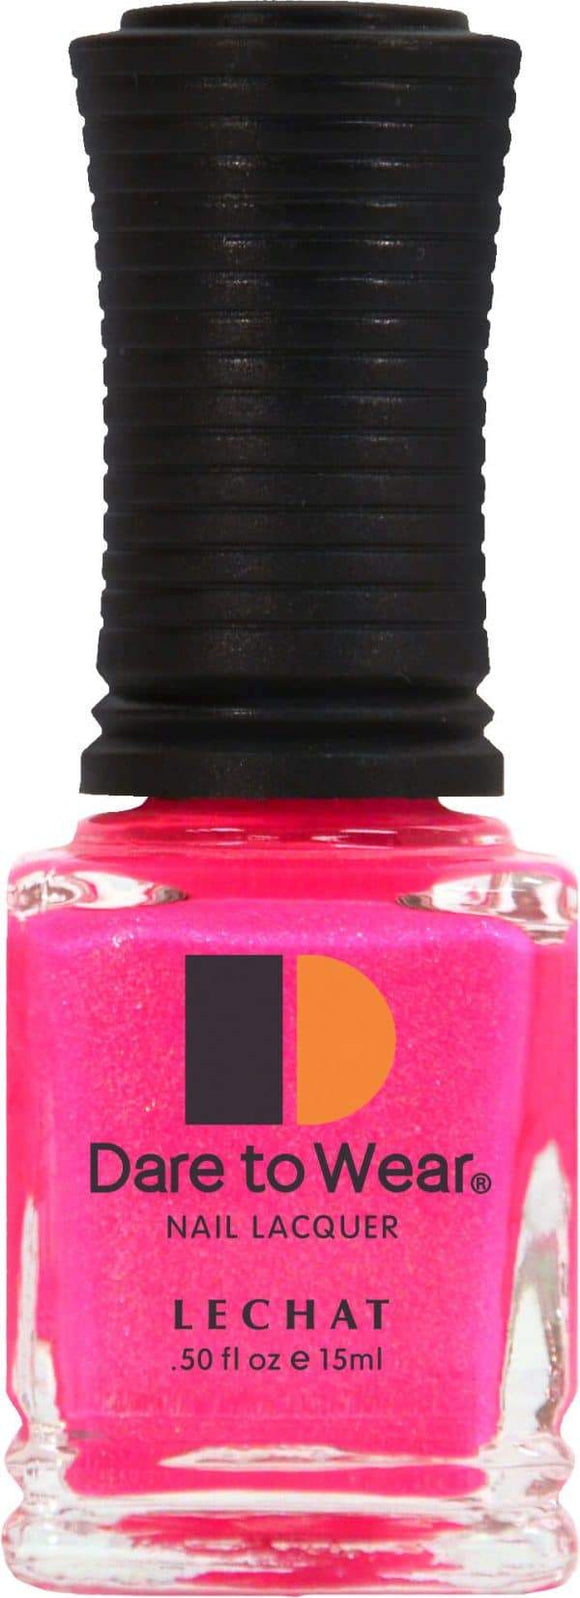 Lechat Nail Lacquers DW147 Peony Passion